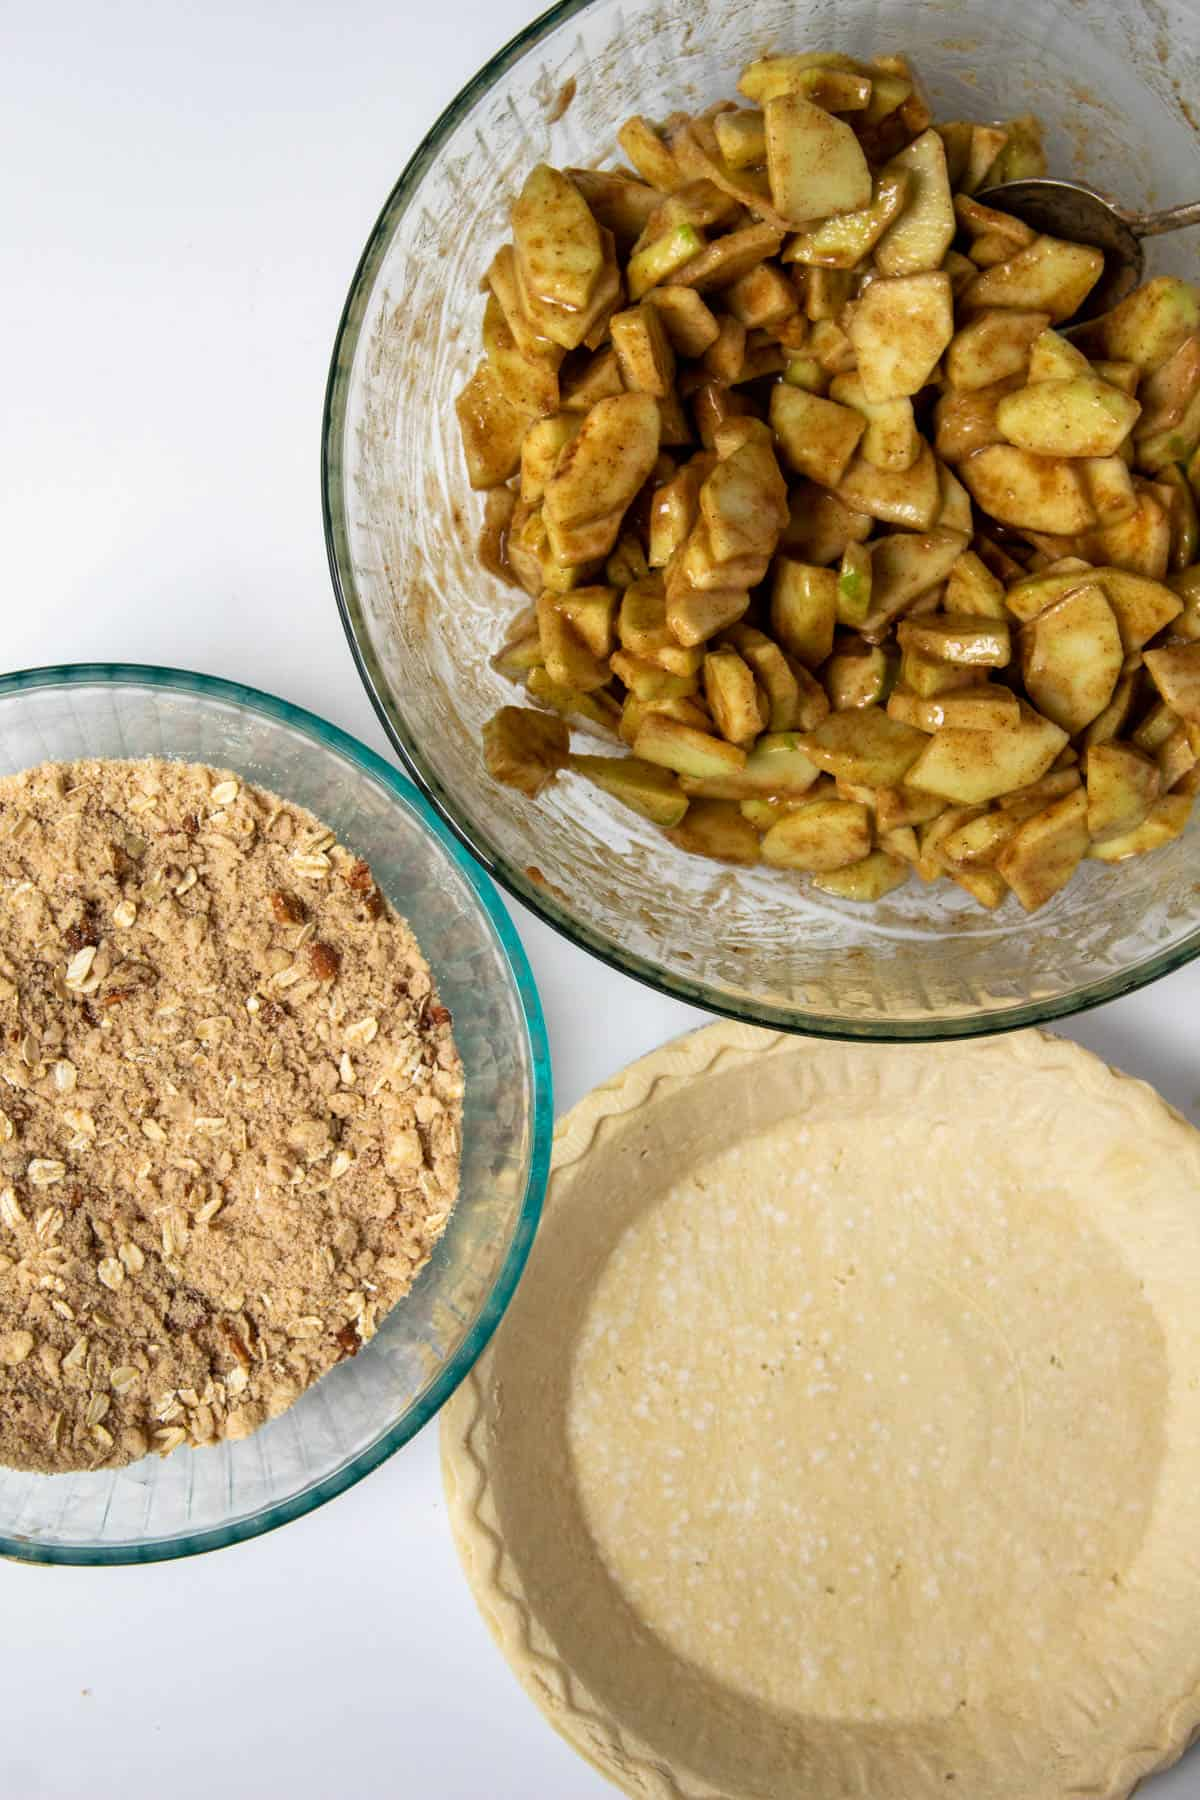 Apple pie filling, streusel topping and frozen pie shell ready to assemble.